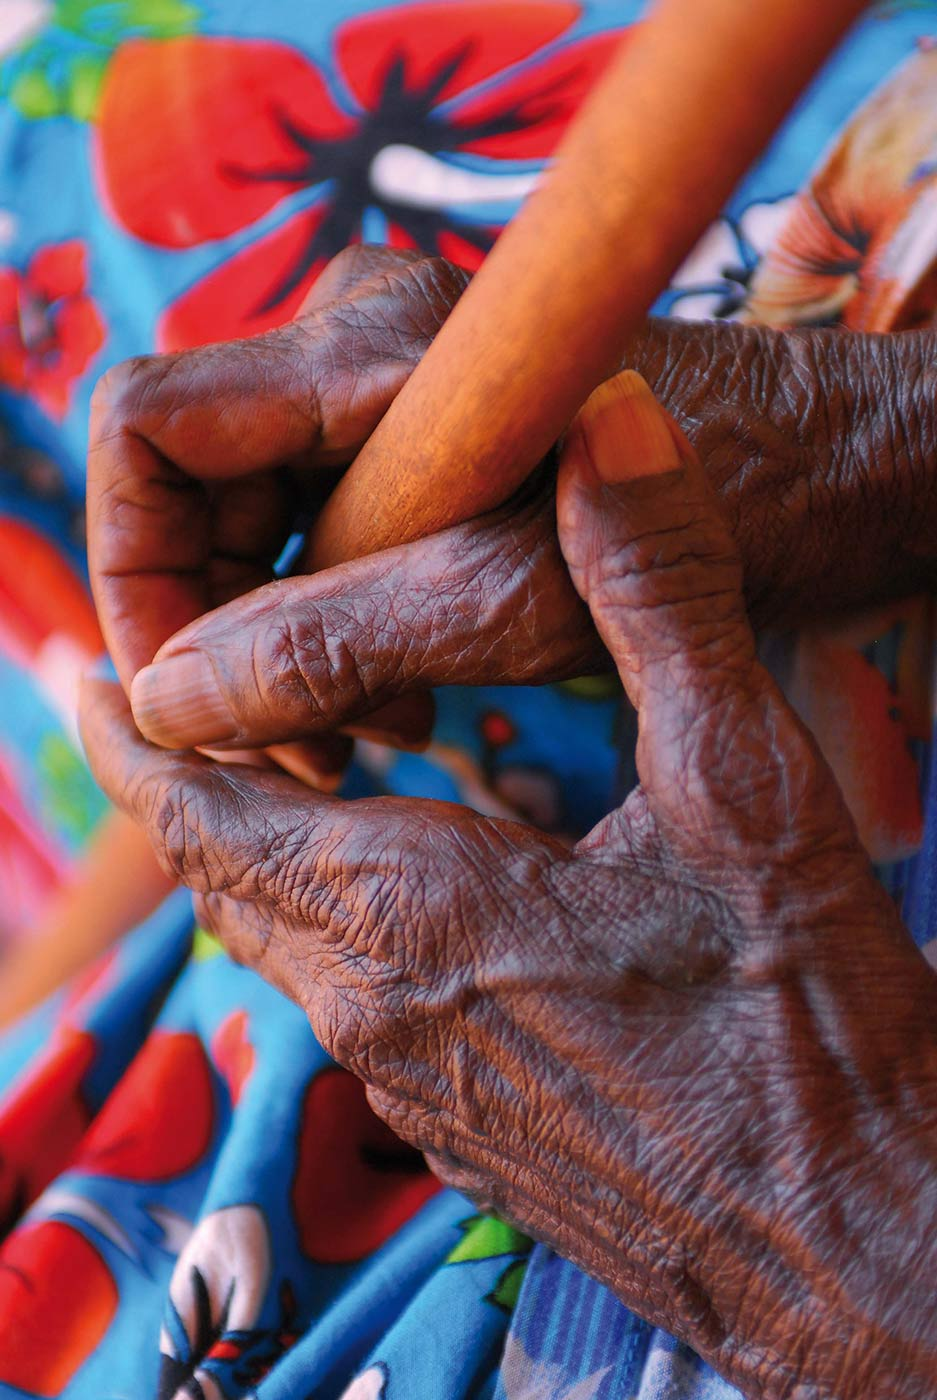 Colour photo of a pair of hands holding a stick. - click to view larger image